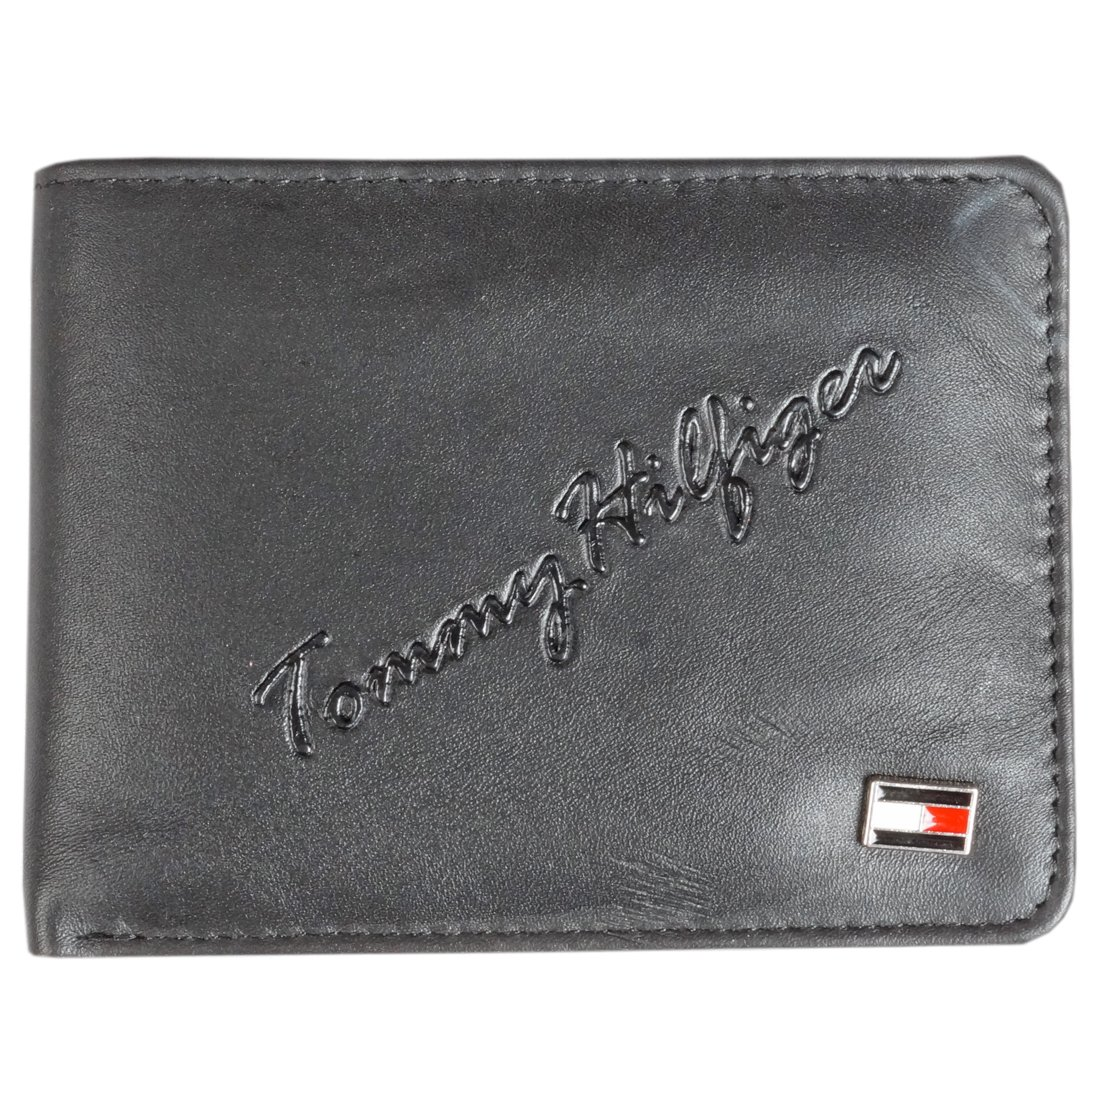 83fed14b Original Tommy Hilfiger Leather Men's Bi fold Money Bag purse Wallet Purse  for Men Gents with credit Card and Coin Slots: Amazon.in: Bags, Wallets &  Luggage